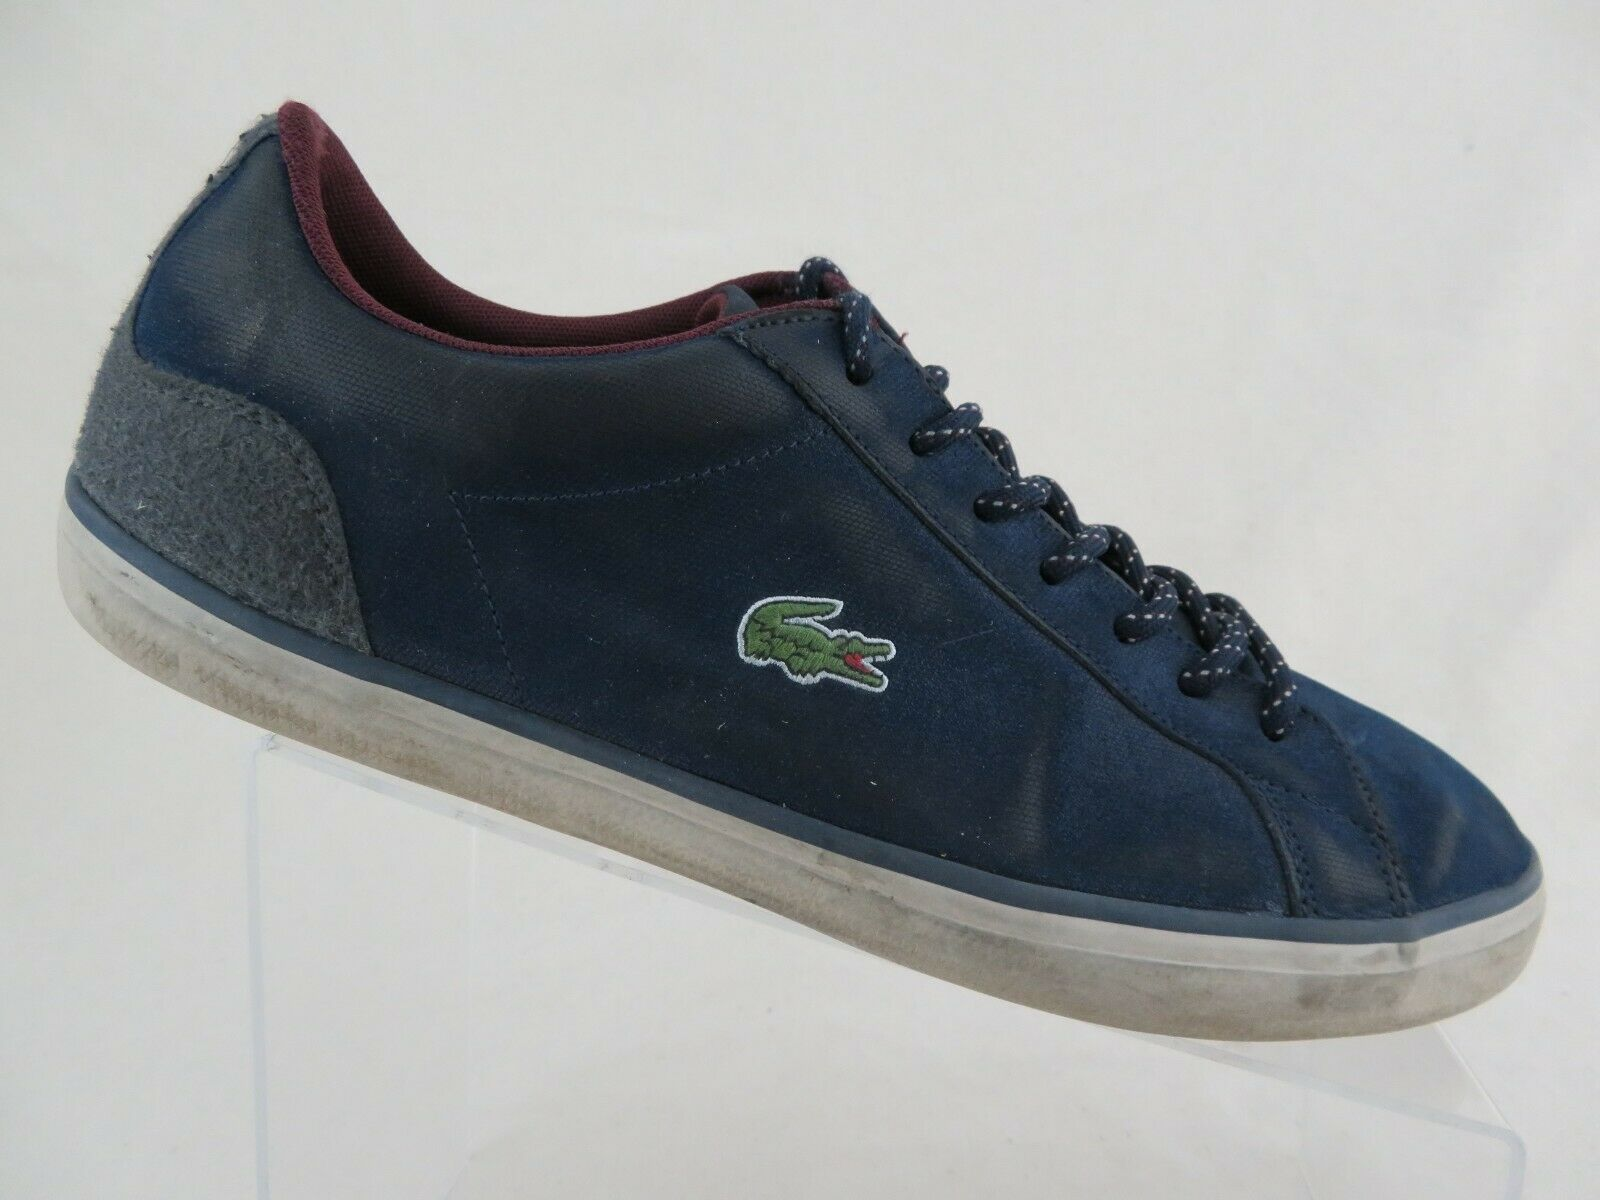 LACOSTE Lerond bluee Sz 10 Men Casual Lace-Up Oxfords